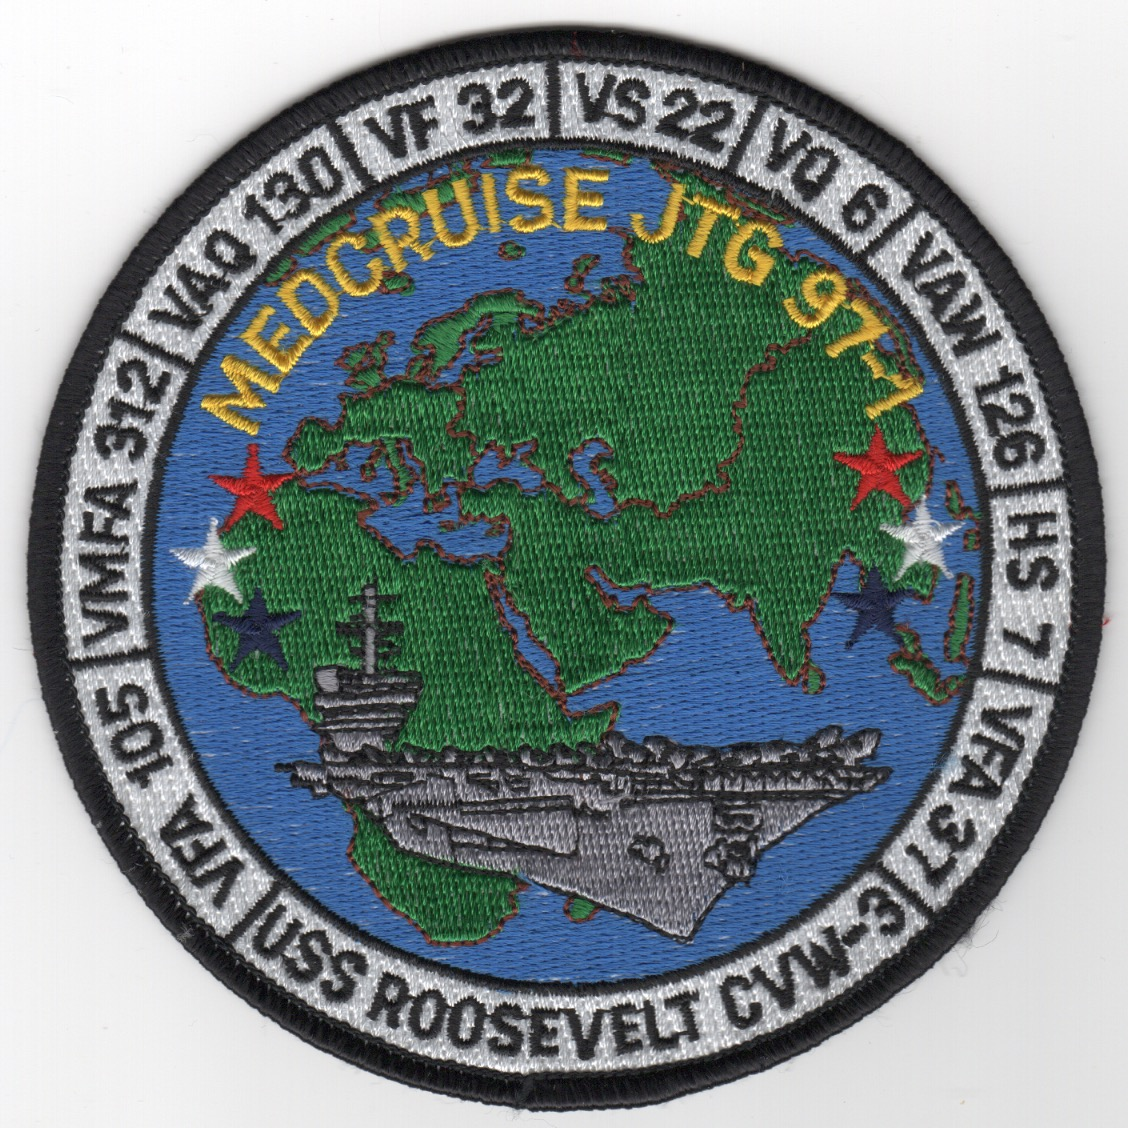 506) CVN-71/CVW-3 1997 'MED' Cruise Patch